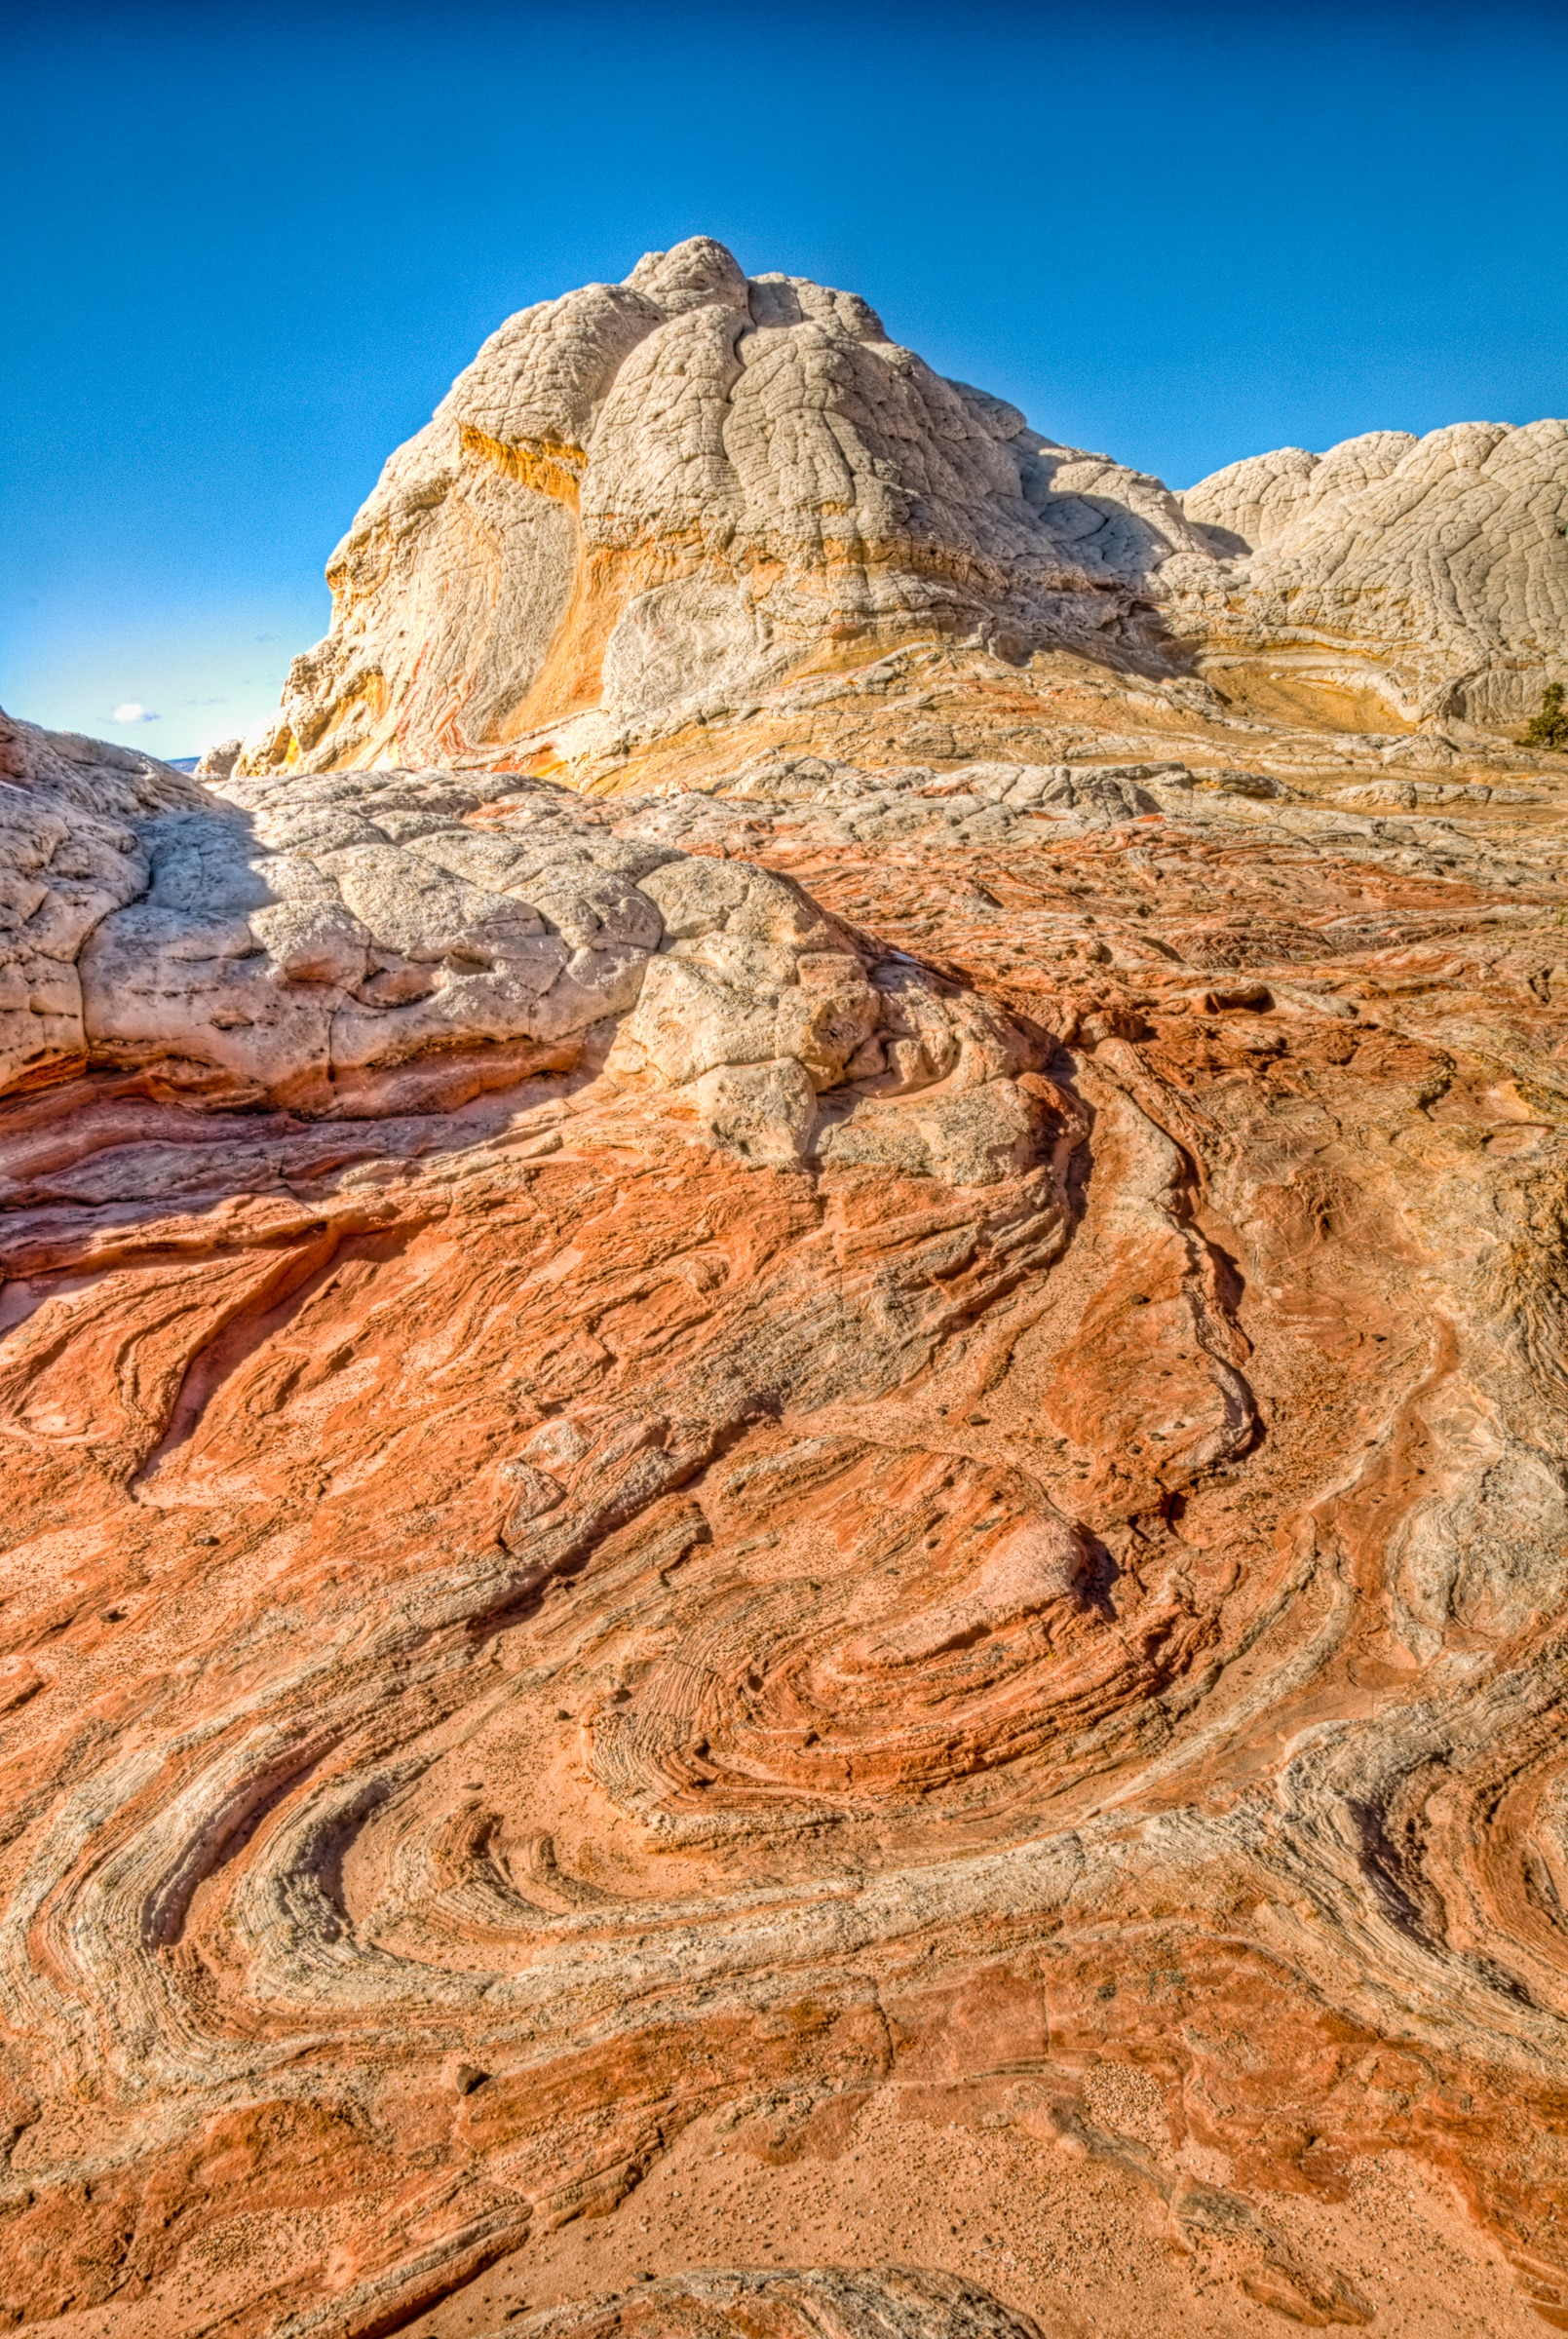 Swirled sandstone at White Pocket in the South Coyote Buttes area of the Vermillion Cliffs National Monument.